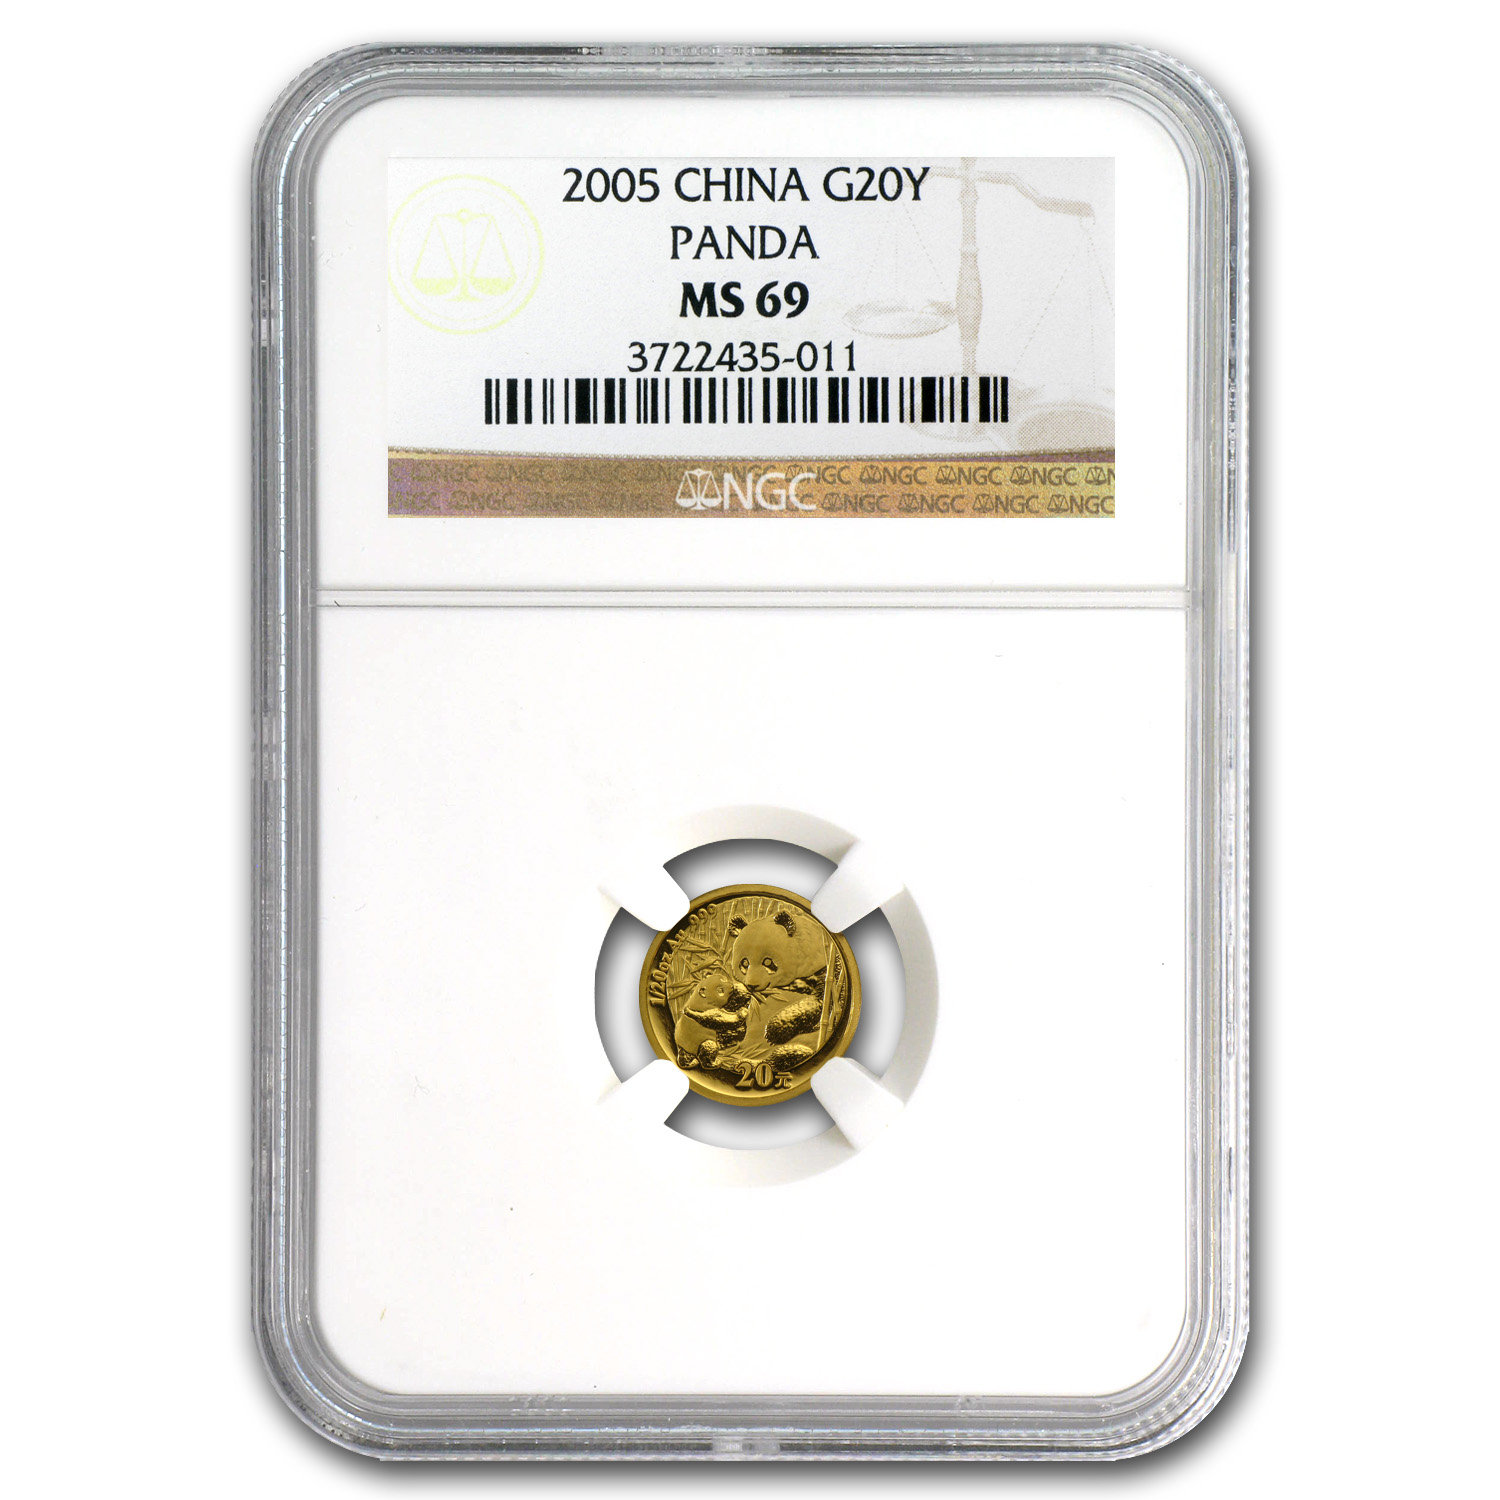 2005 China 1/20 oz Gold Panda MS-69 NGC